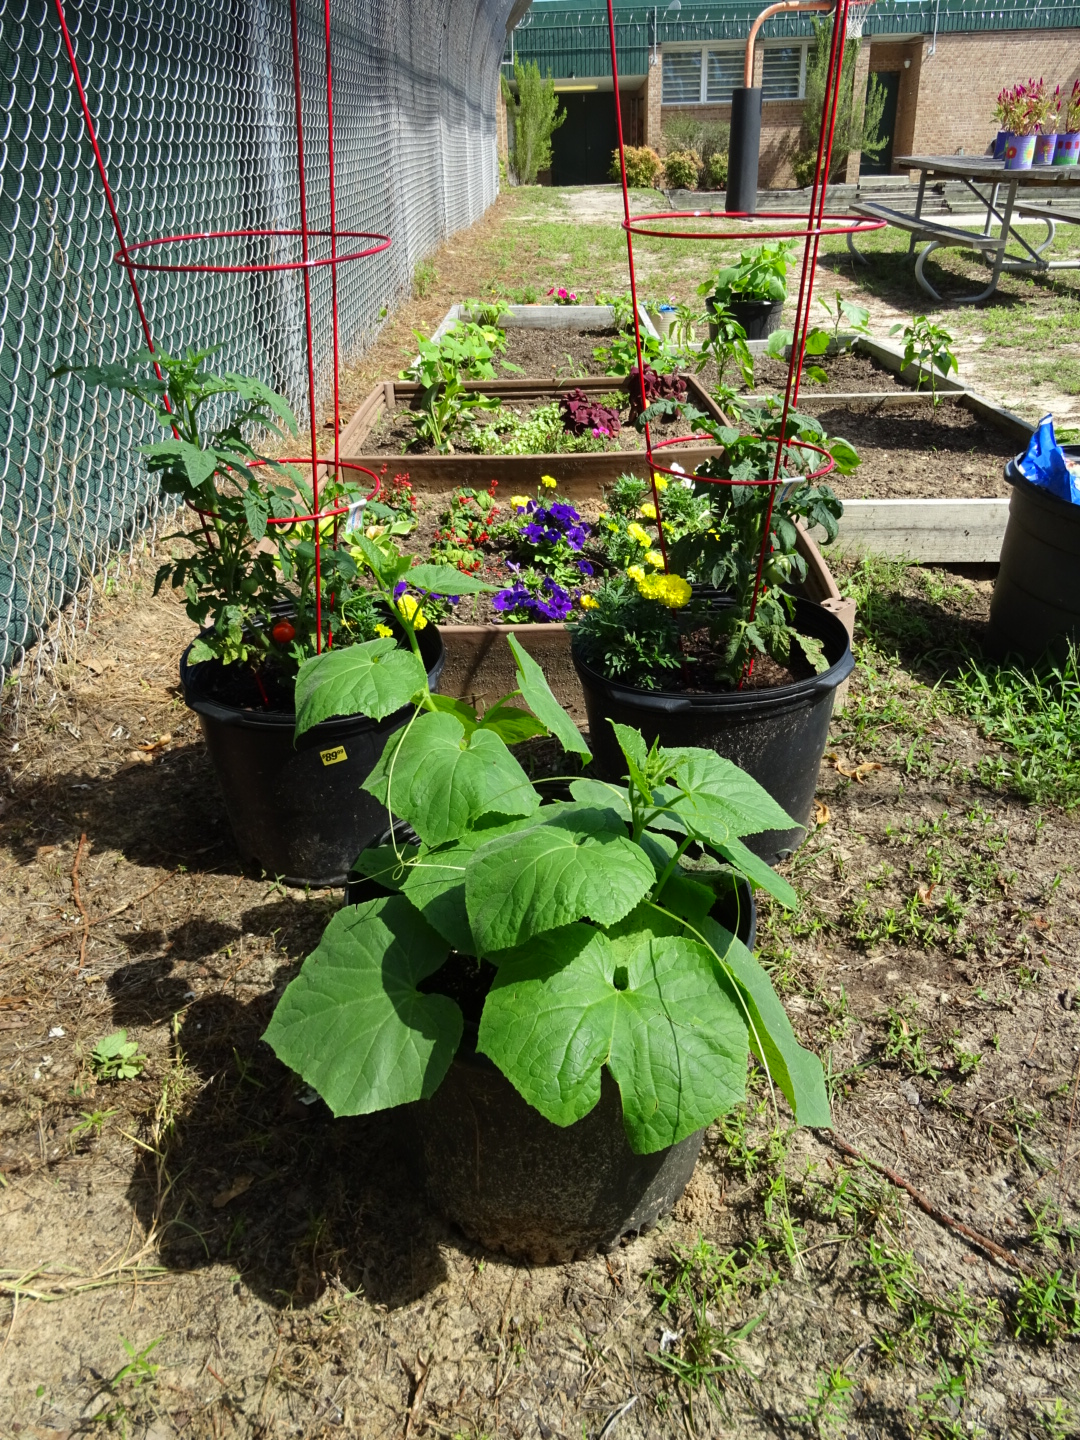 Vegetables growing